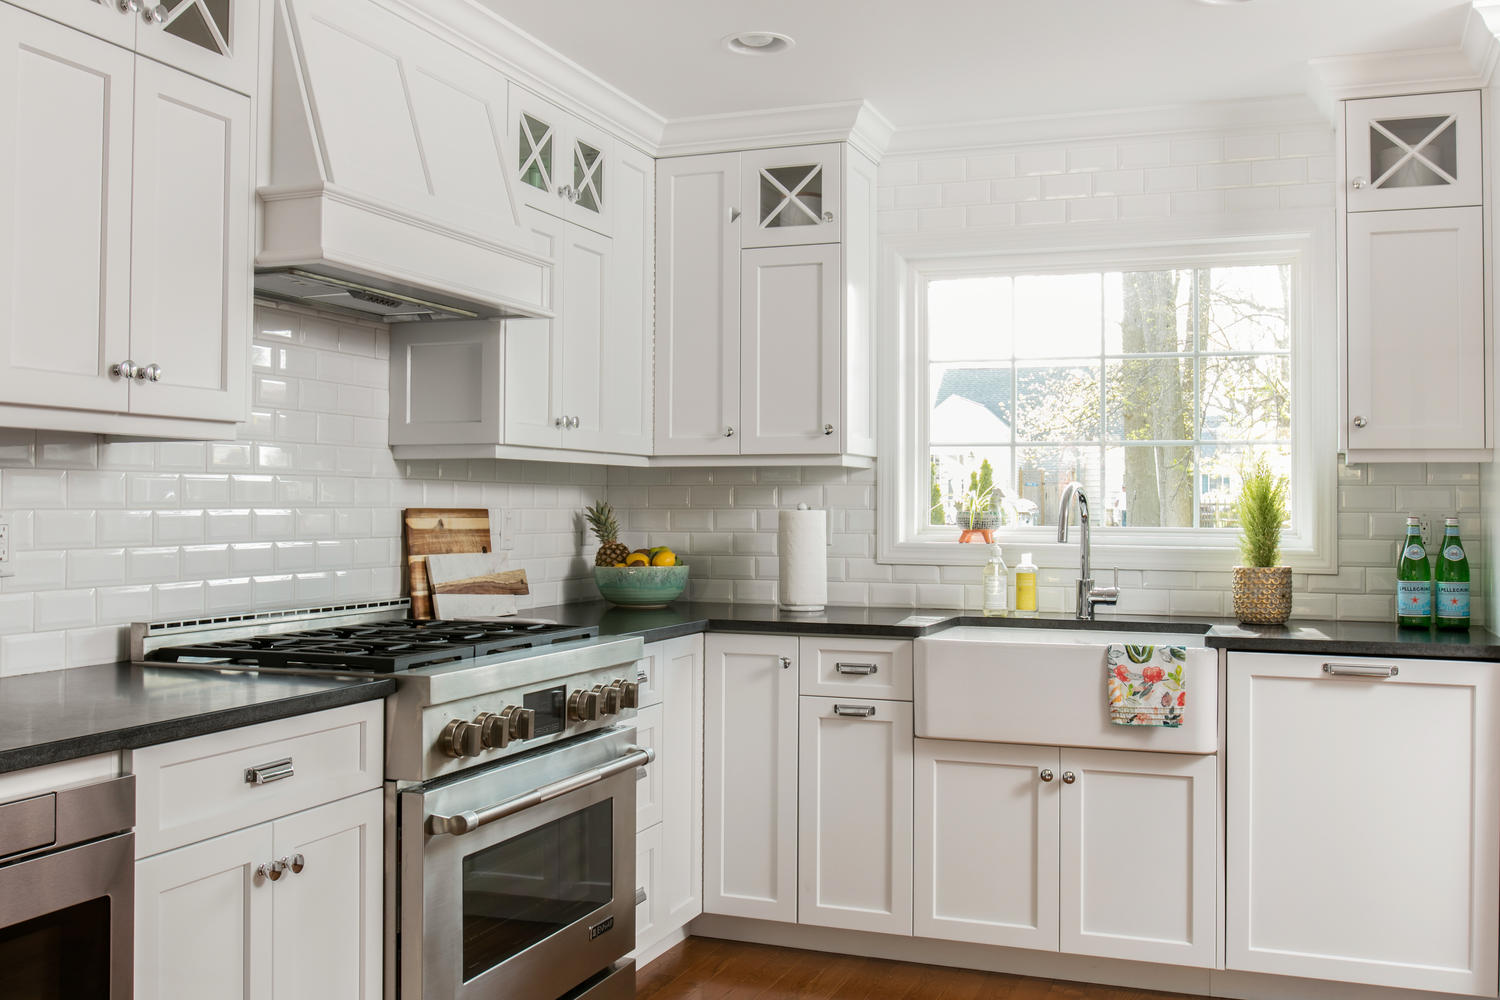 Classic White Kitchen A Look At Classic White Kitchen Shrewsbury New Jerseydesign